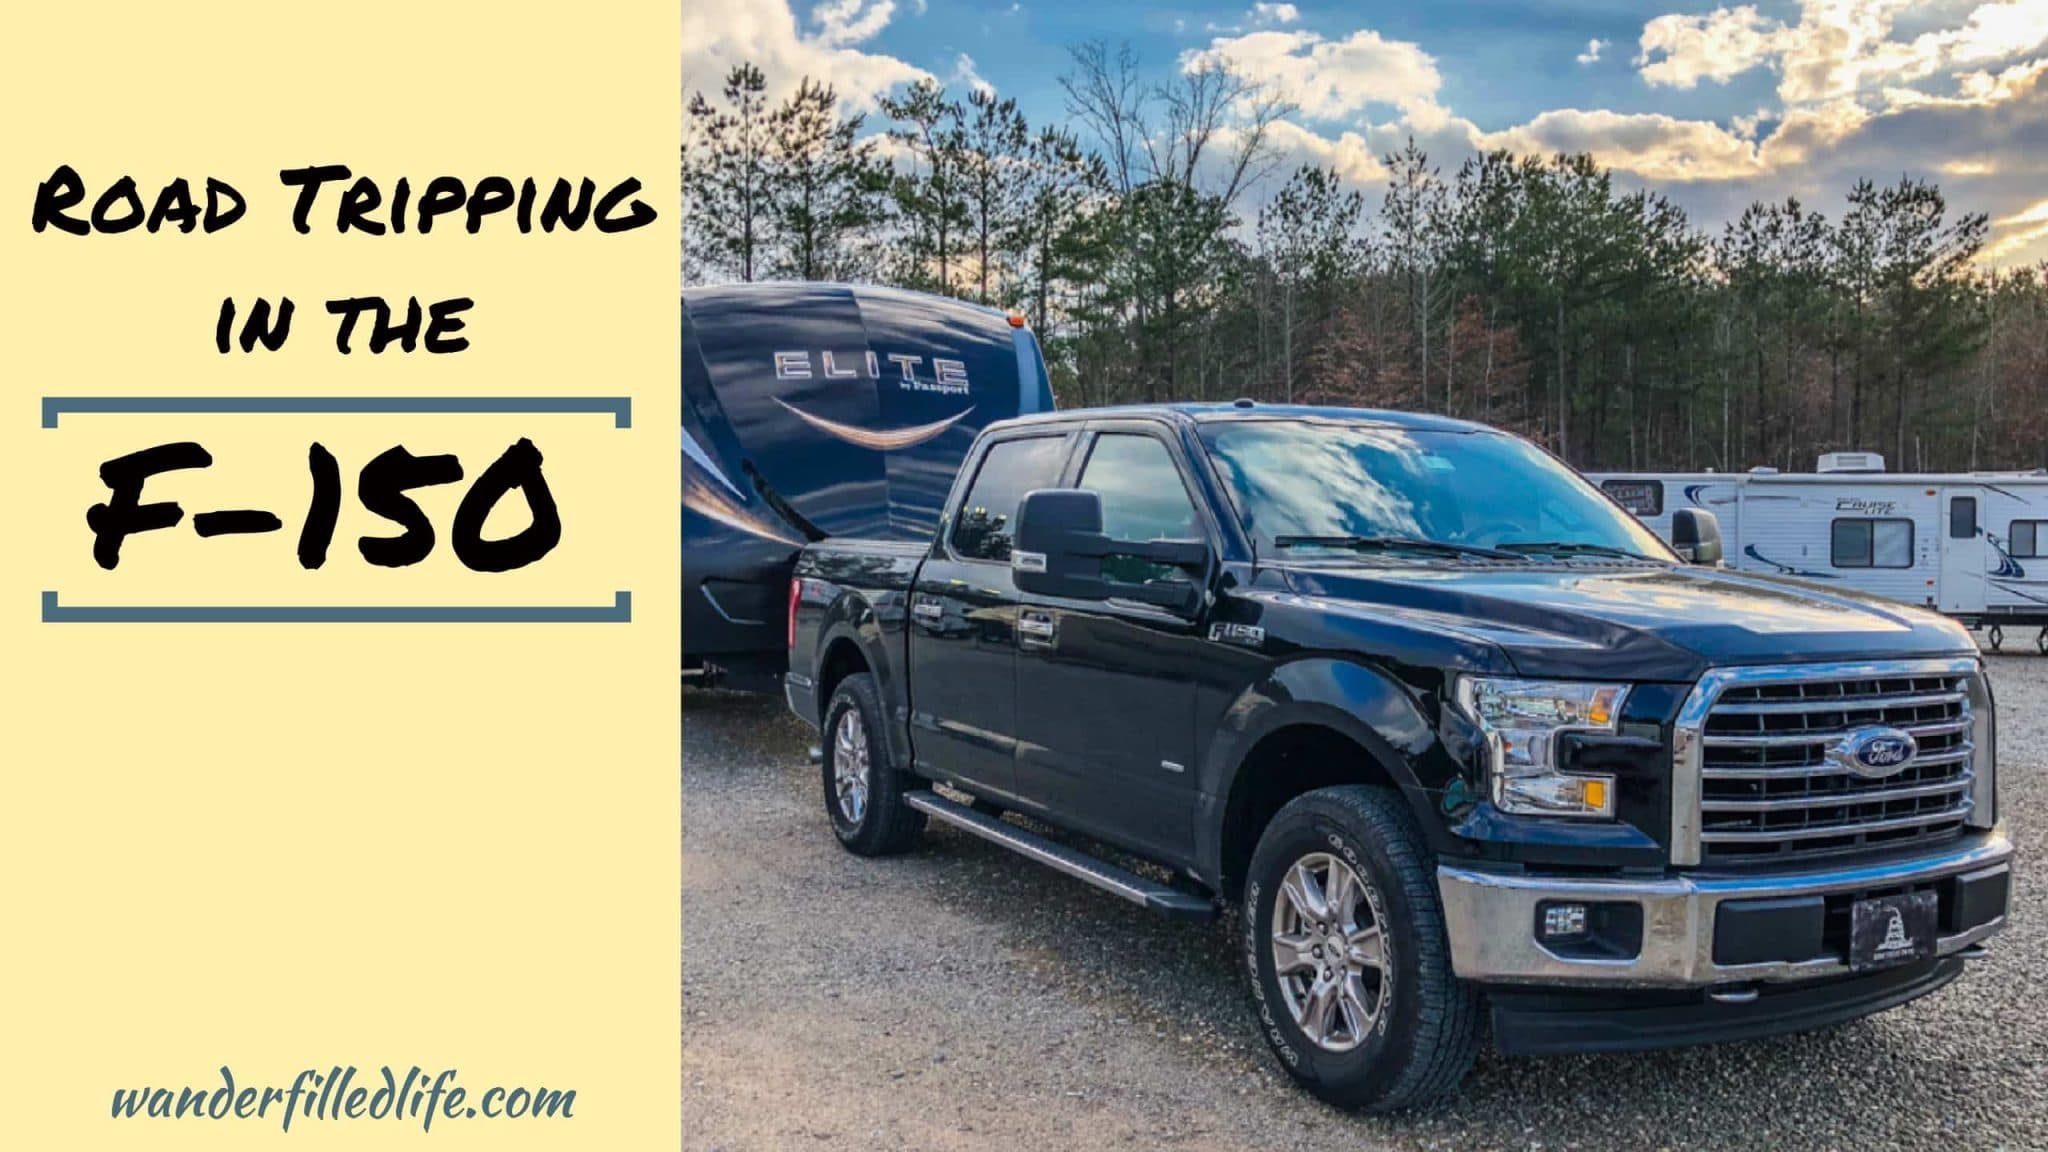 Road Tripping With Our 2017 F 150 Our Wander Filled Life